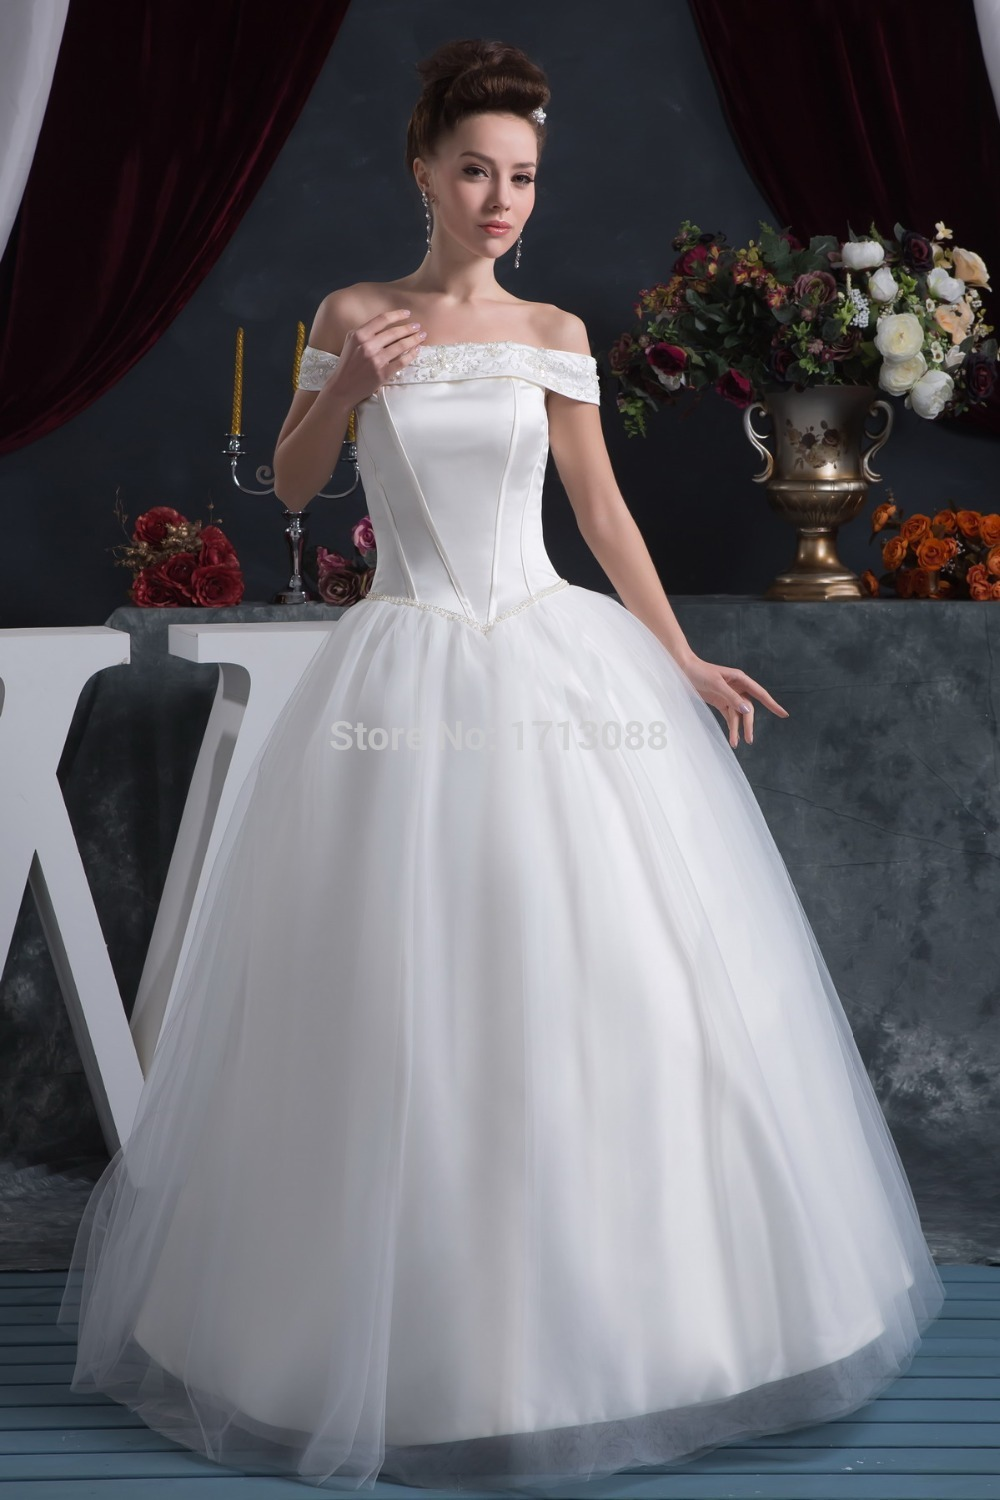 Buy Cap Sleeve Wedding Dress With No